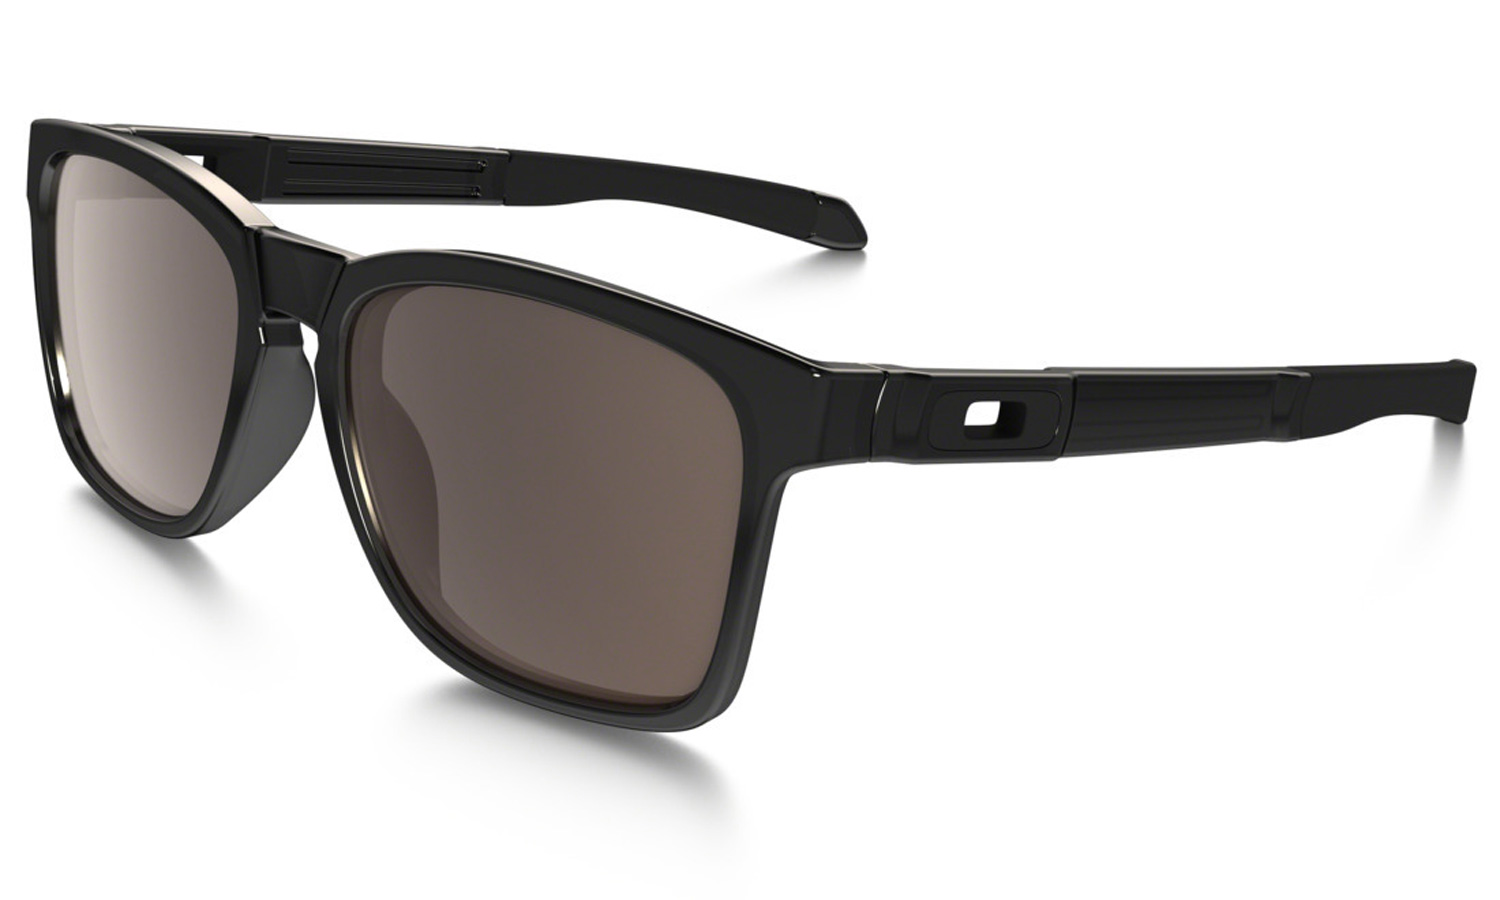 Product image of Oakley Catalyst Sunglasses Black Ink with Warm Grey Lens